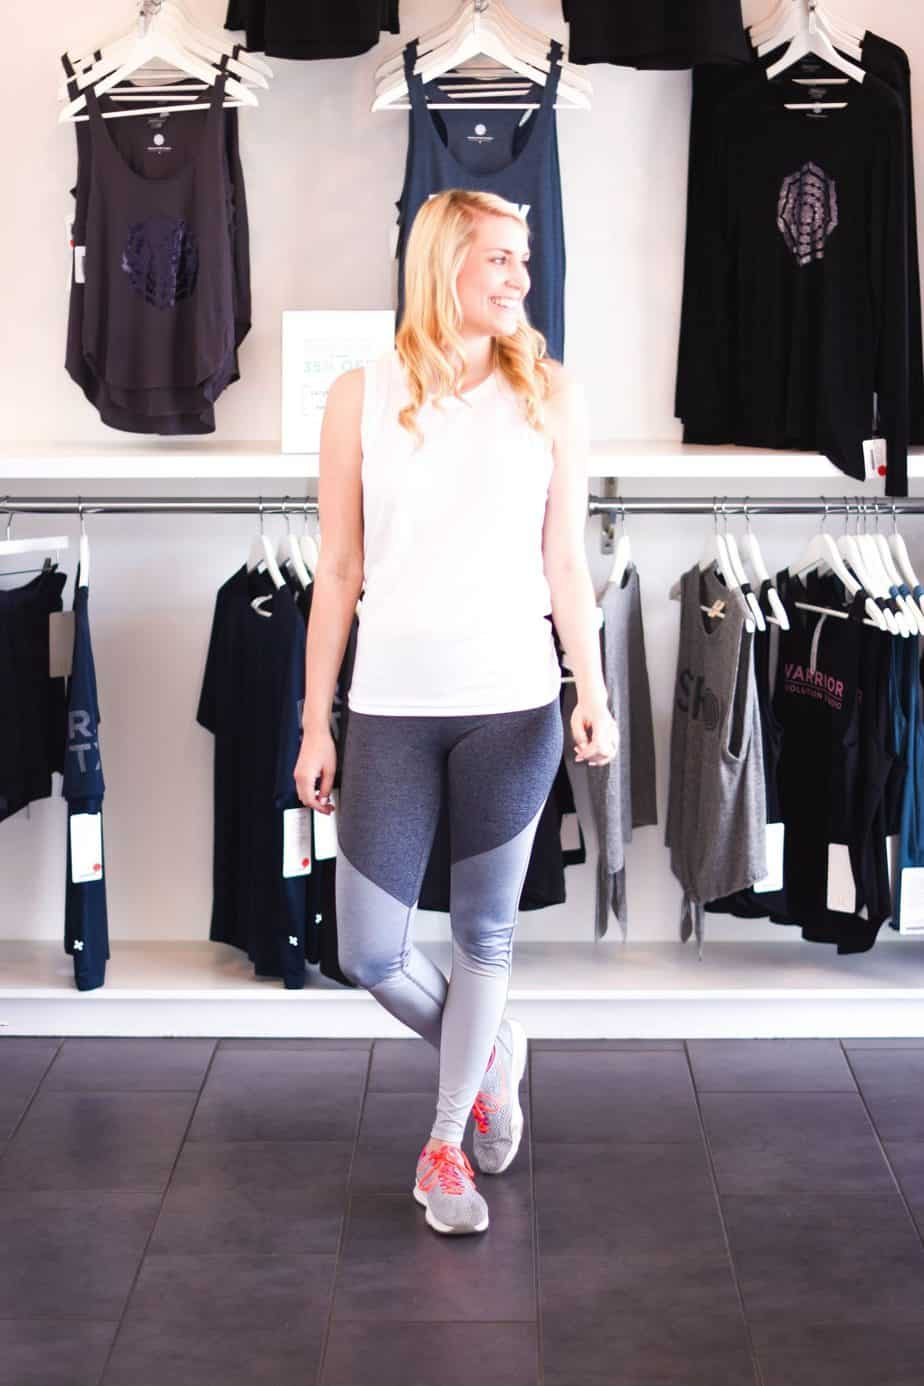 Revolution Workout Outfit Sweating For The Wedding